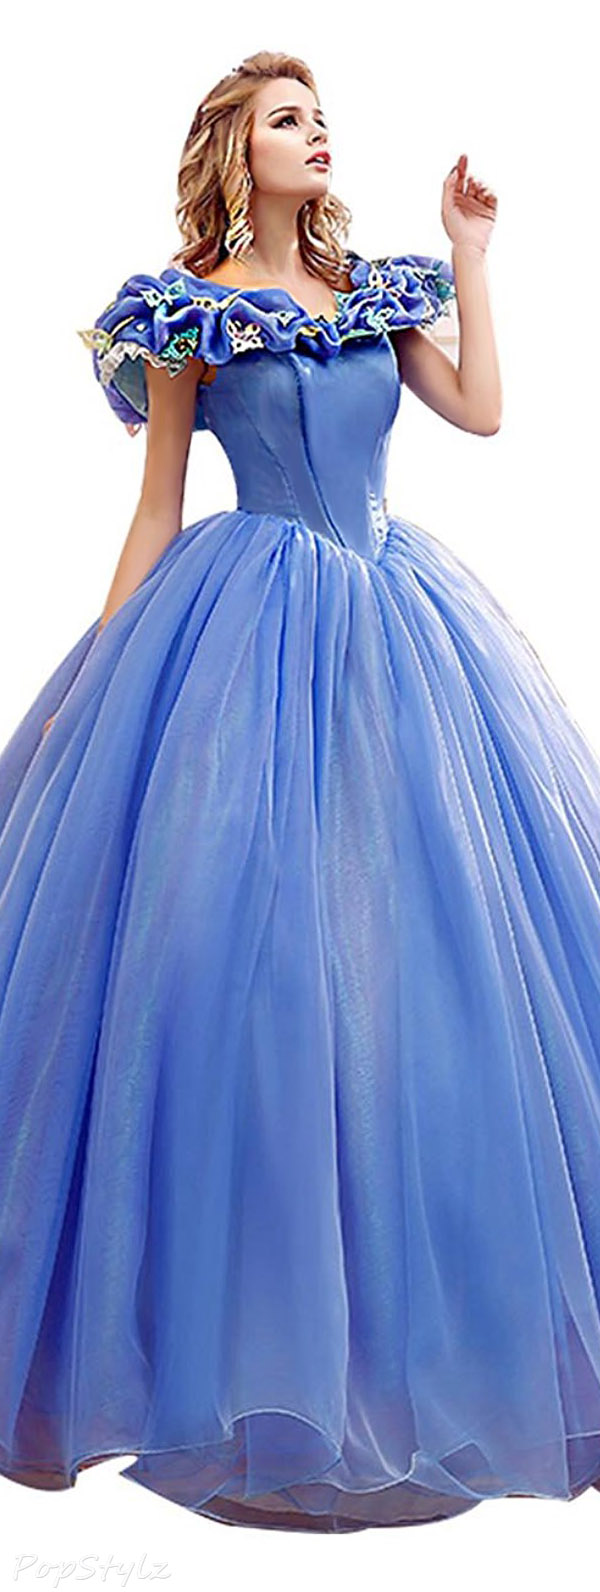 Snowskite Butterfly Princess Cinderella Ball Gown